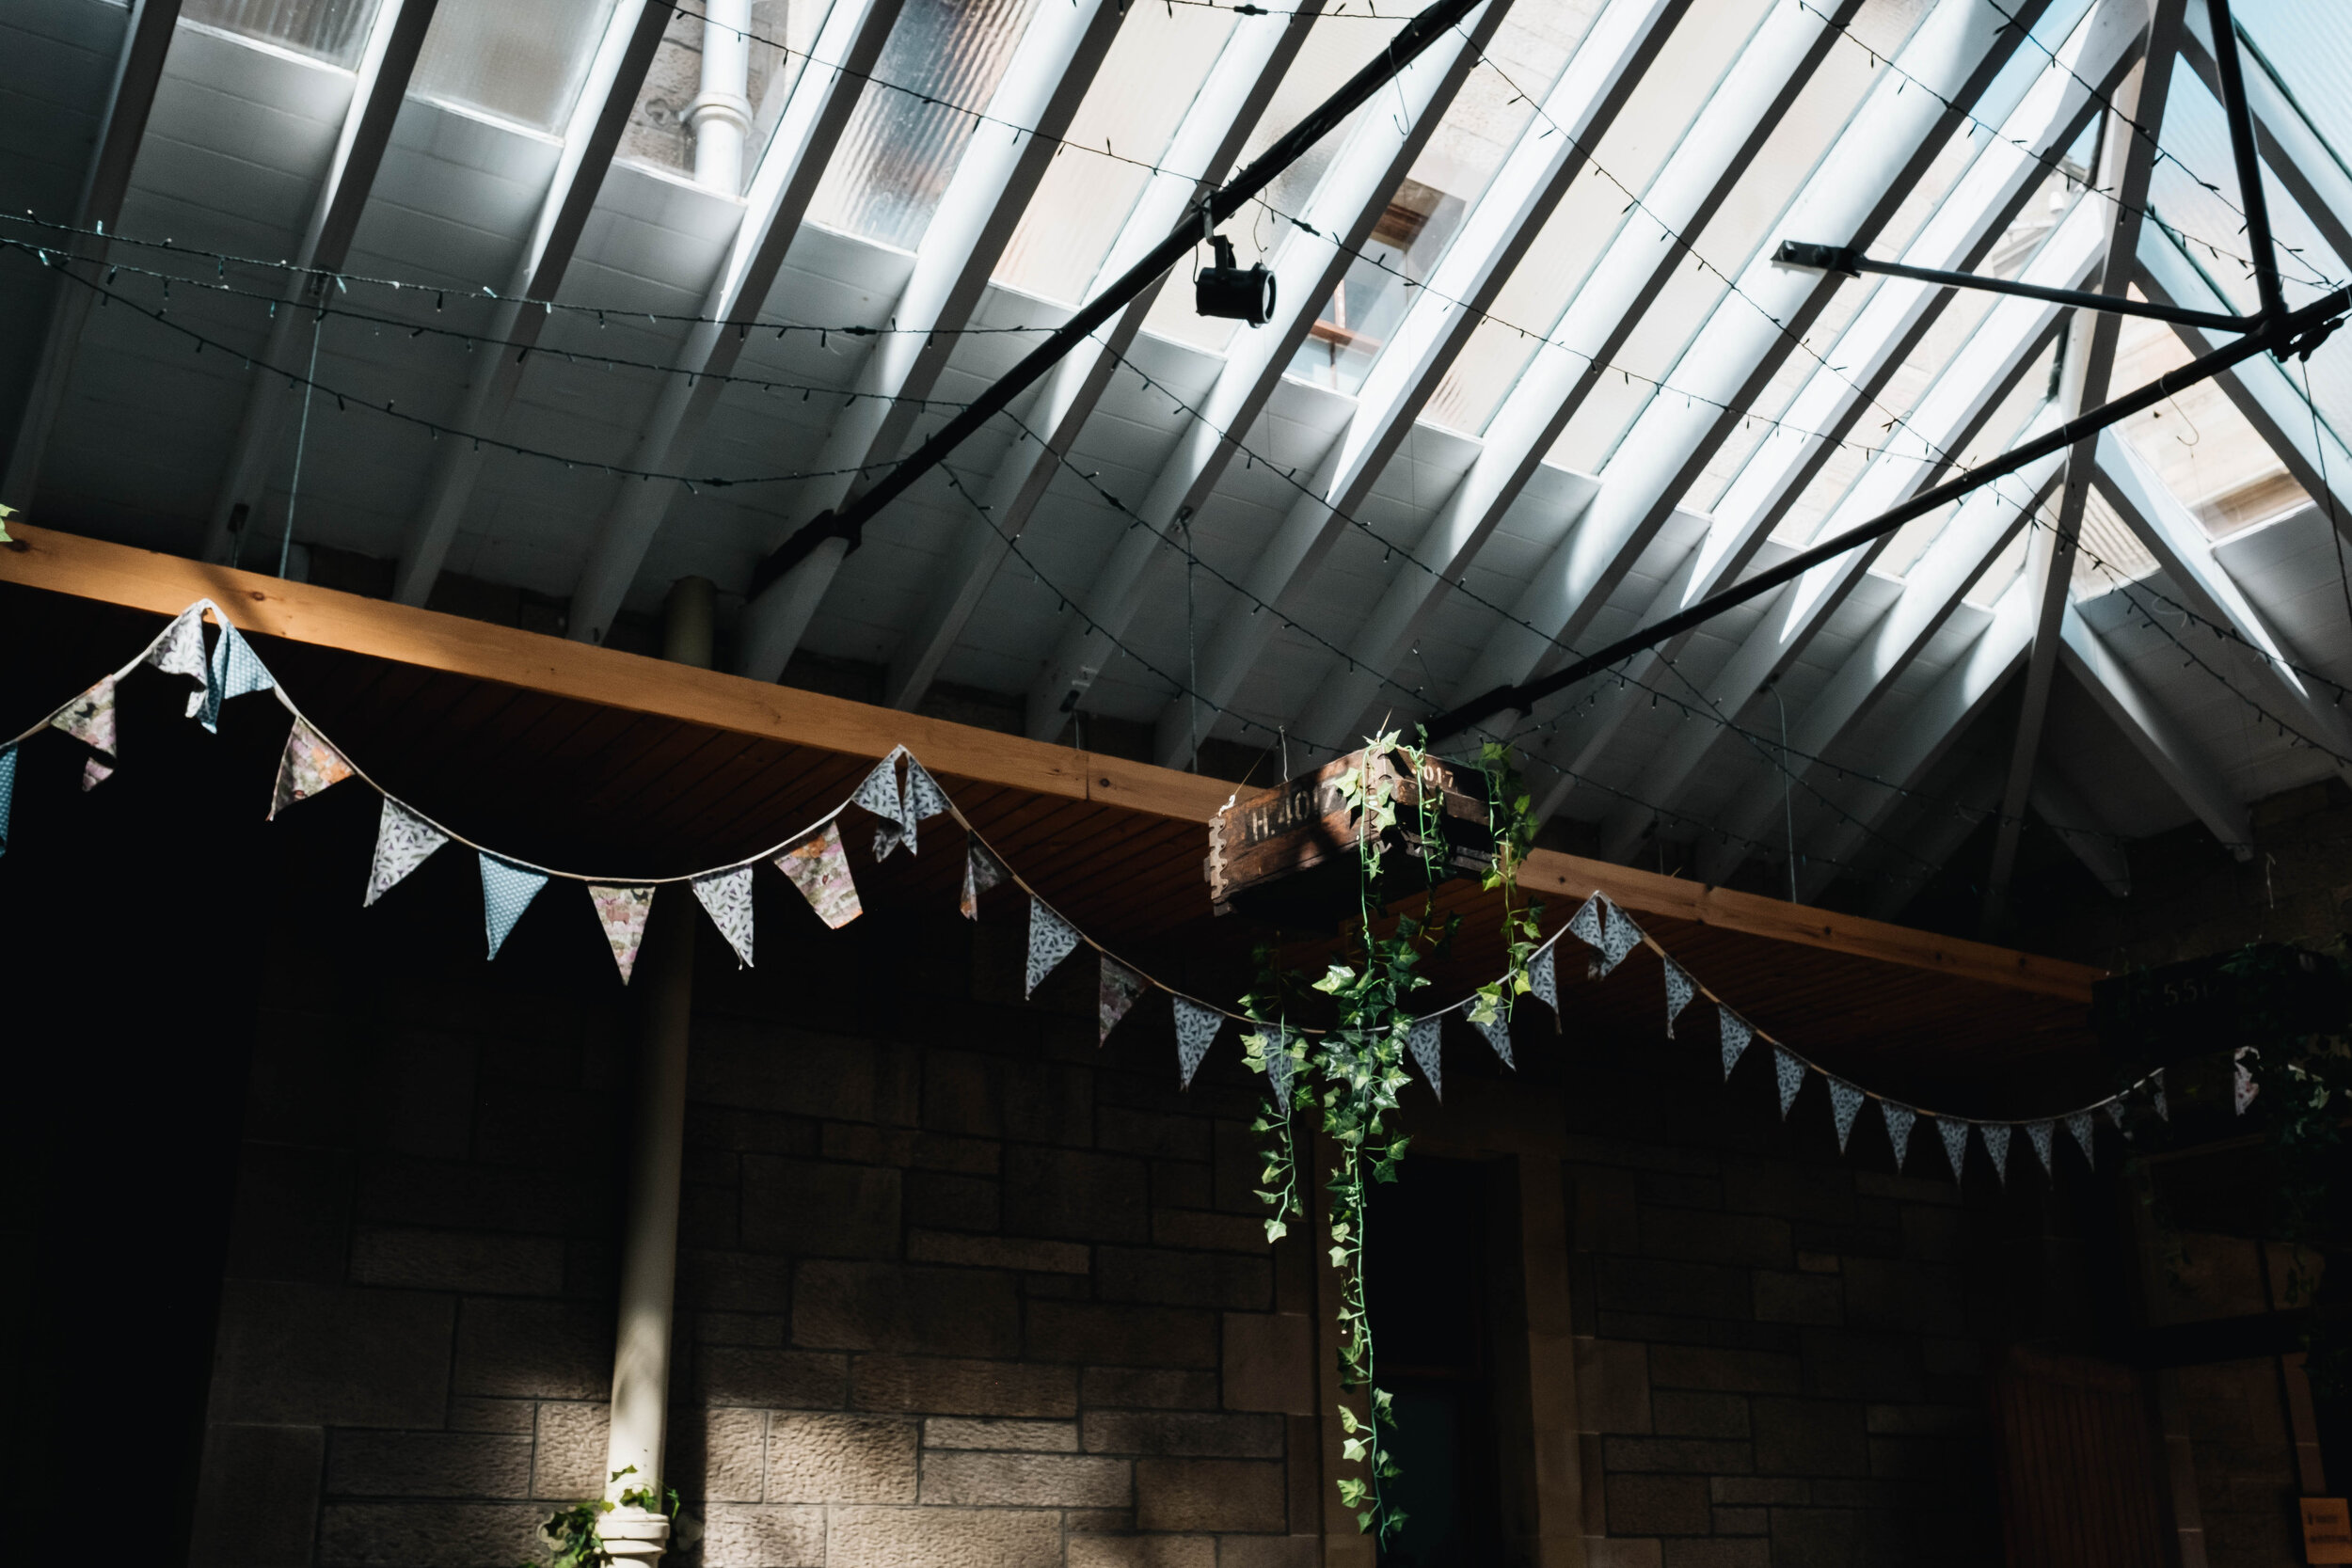 Pastel coloured bunting hangs in the stable area of Cambo House